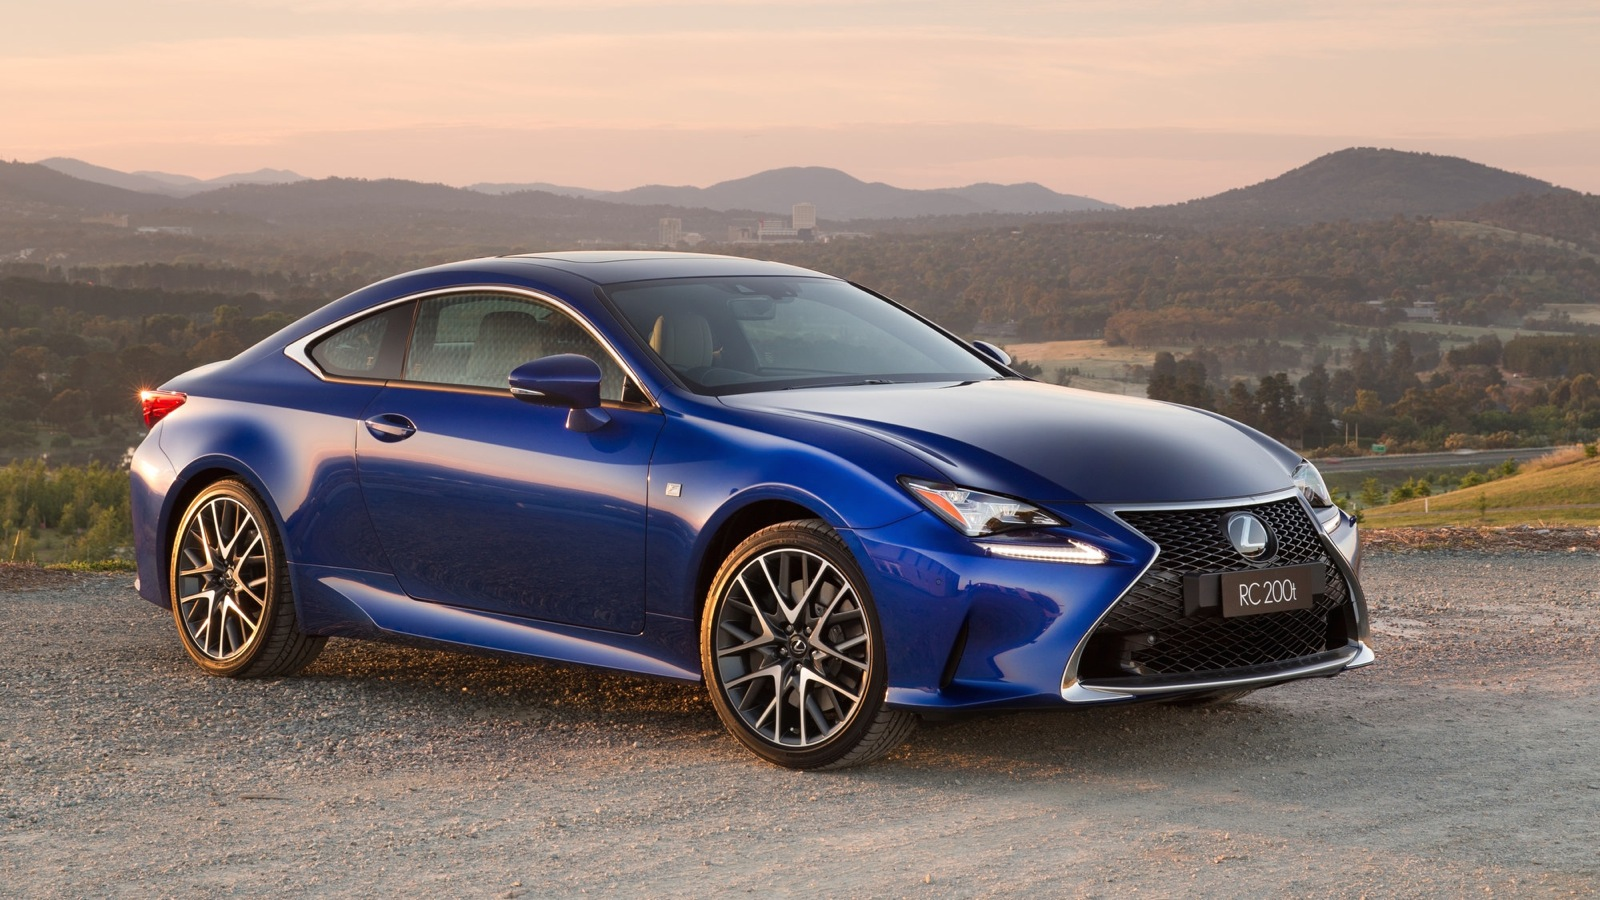 2016 Lexus RC200t Review - Photos